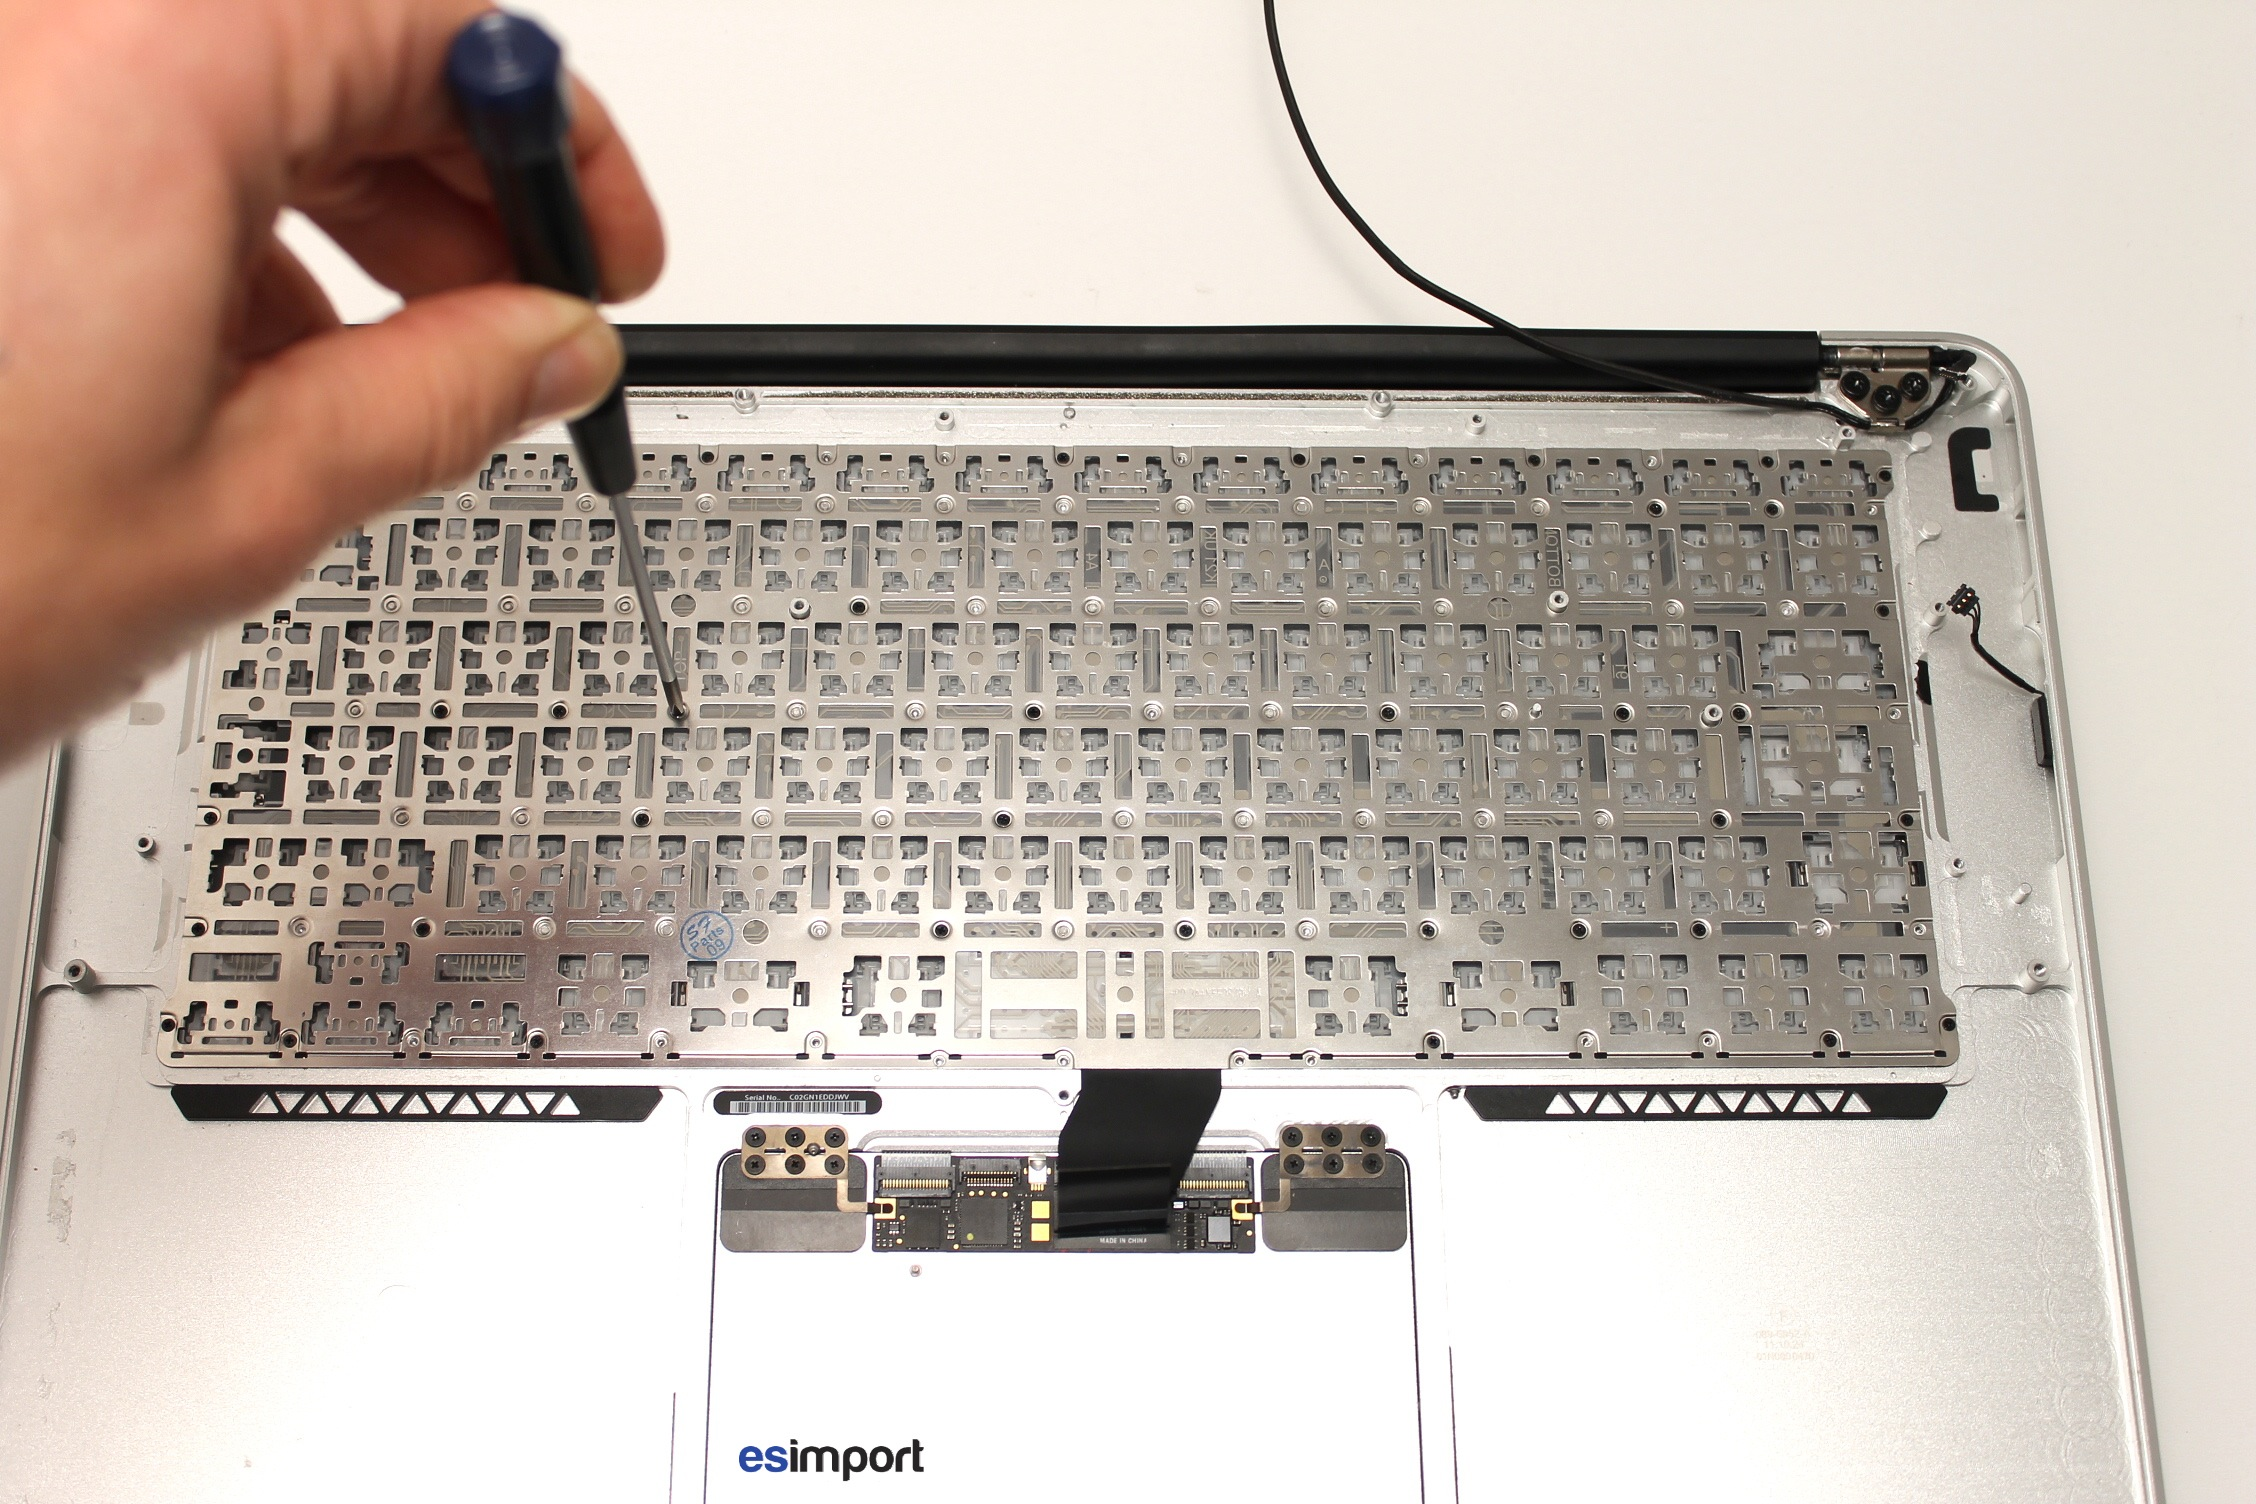 changer clavier macbook air